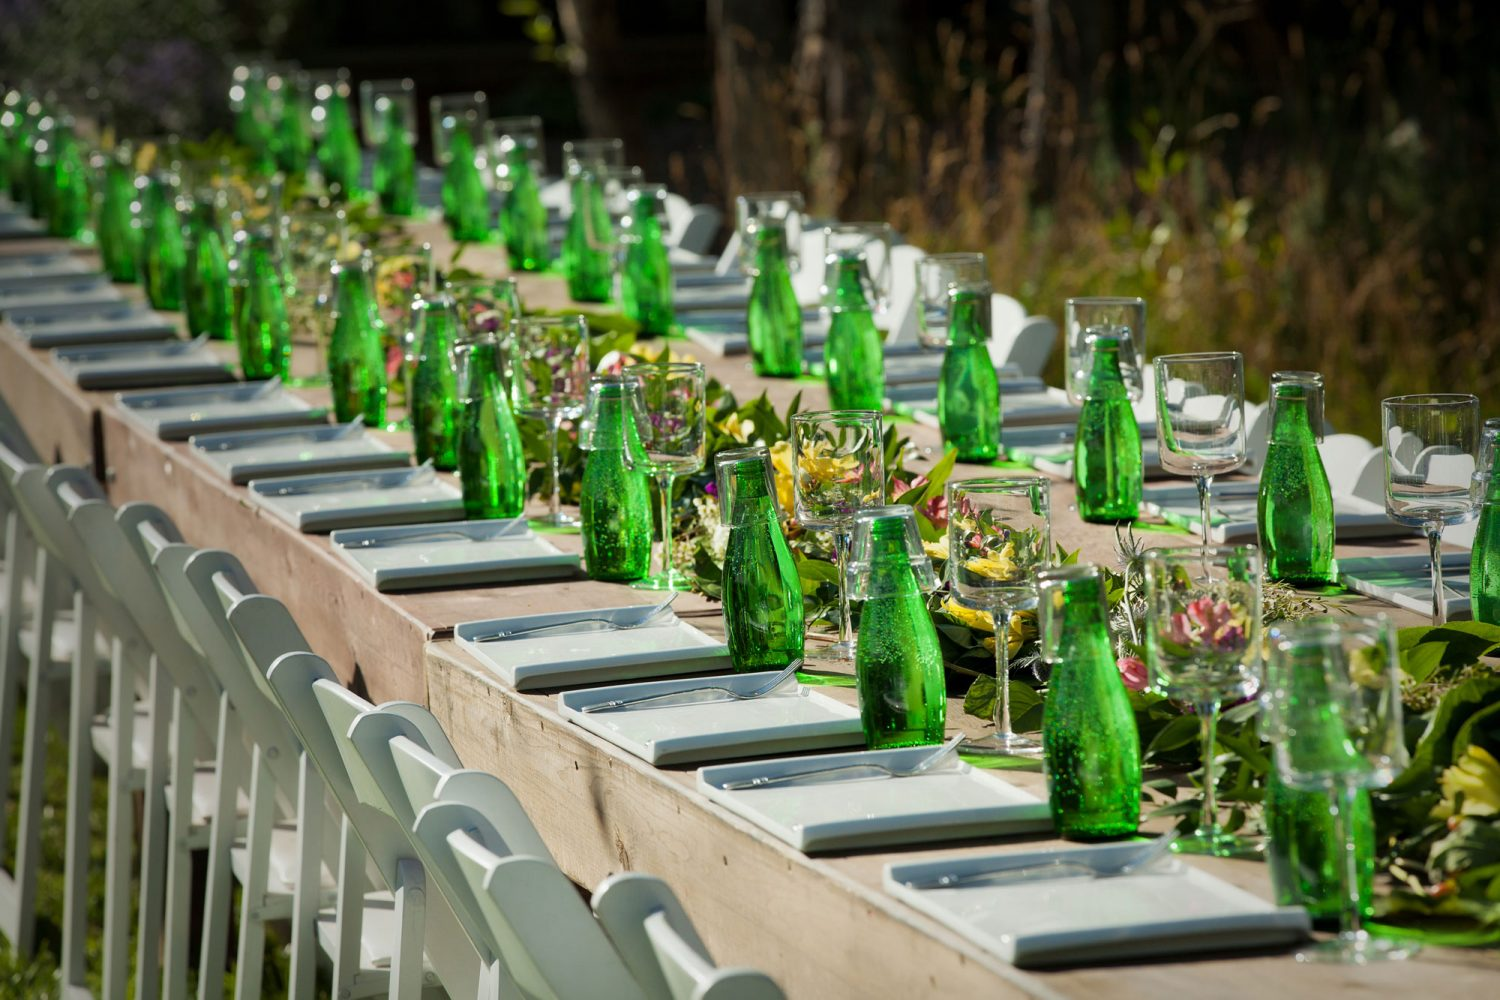 Long farm tables from a backyard reception on the lawn in the Animas Valley of Durango, Colorado